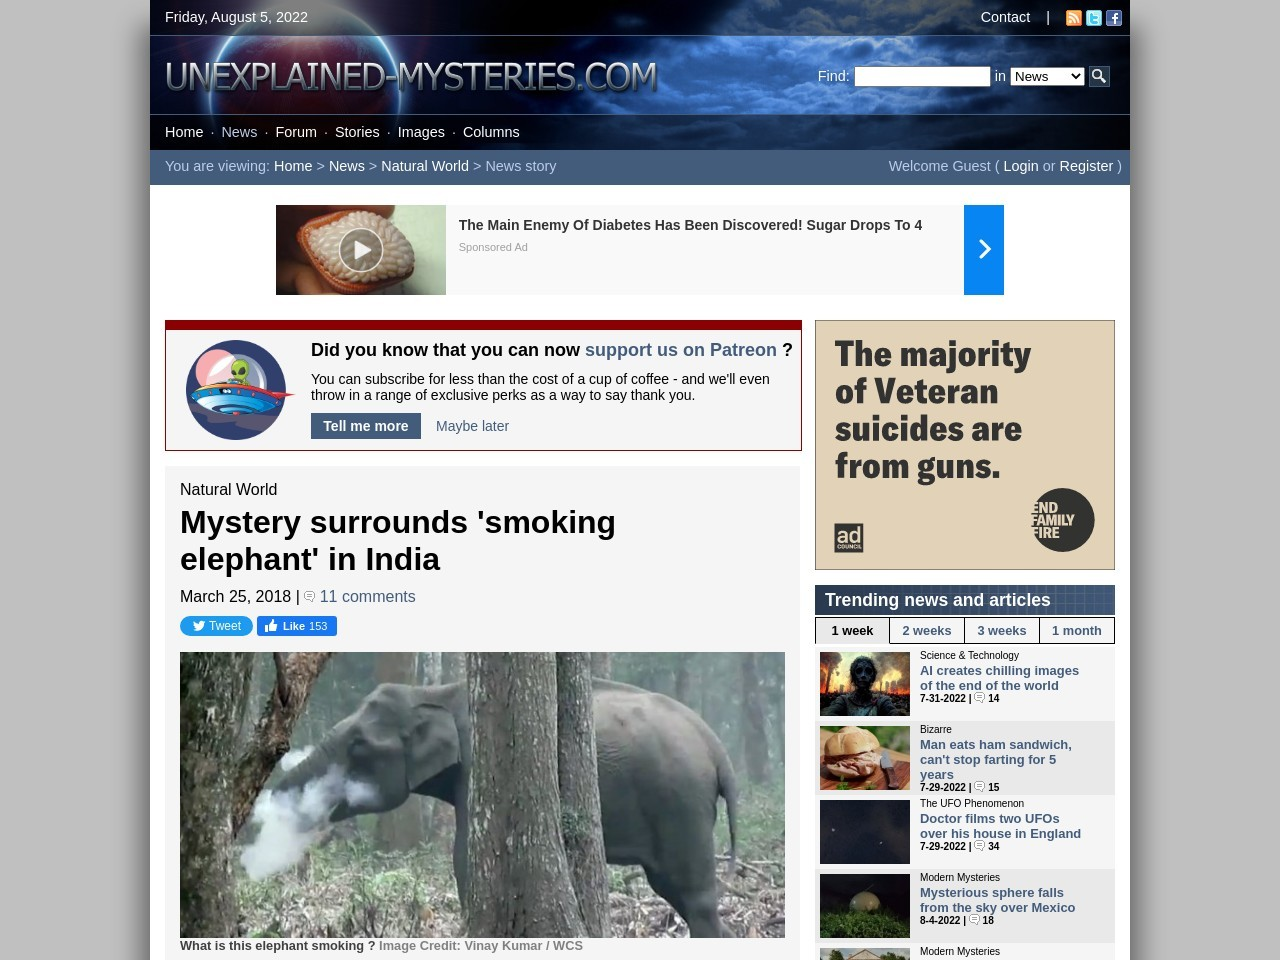 Mystery surrounds 'smoking elephant' in India